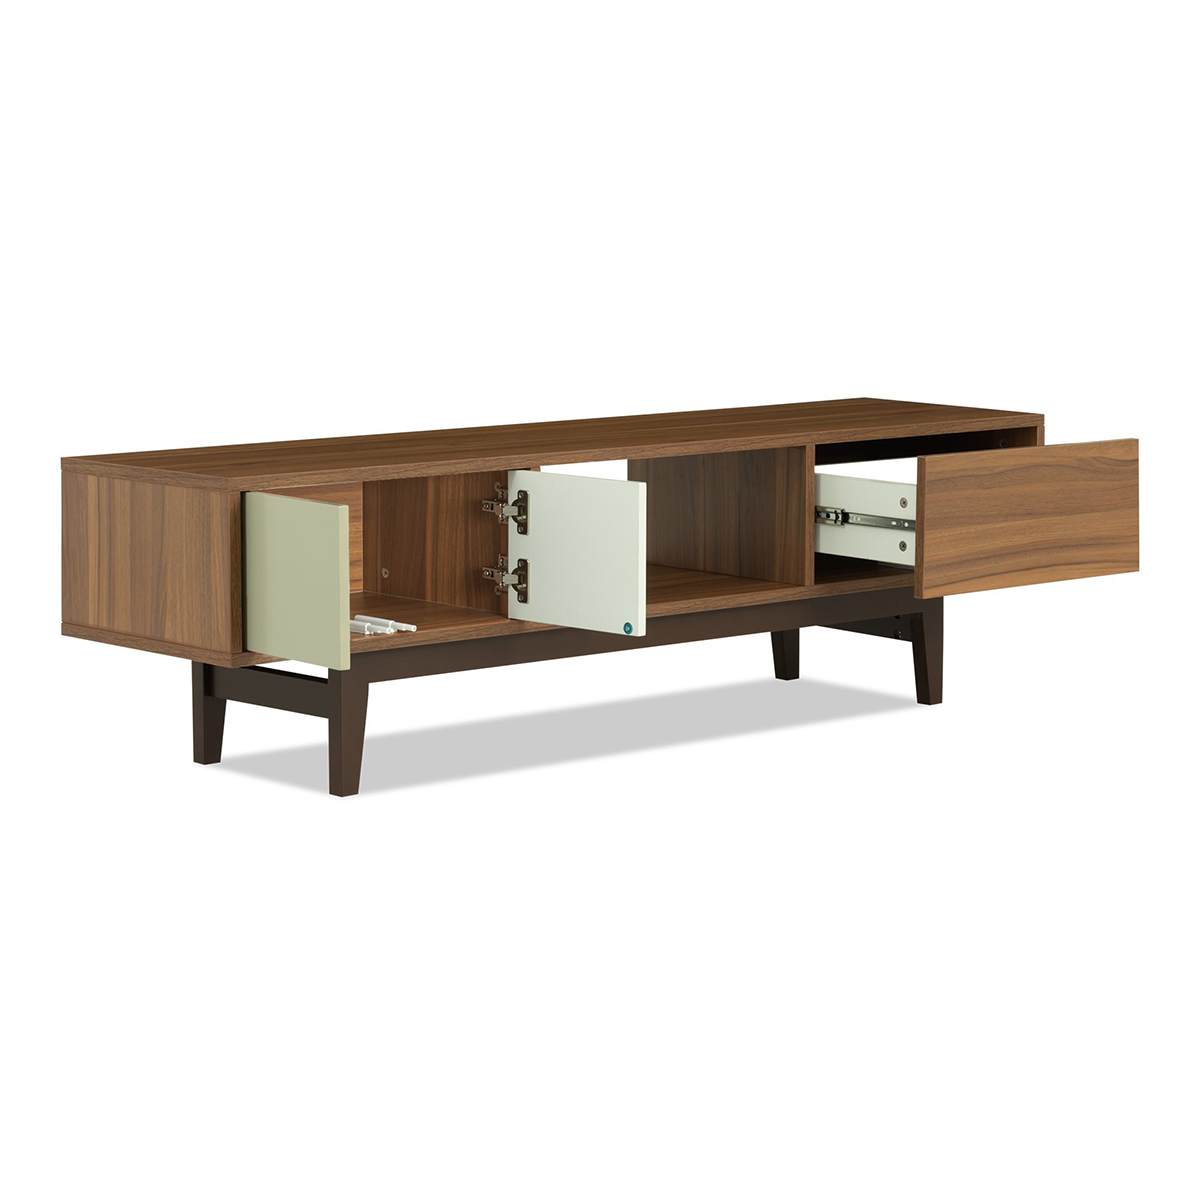 Wooden furniture Modern simple MDF tv units design for living room